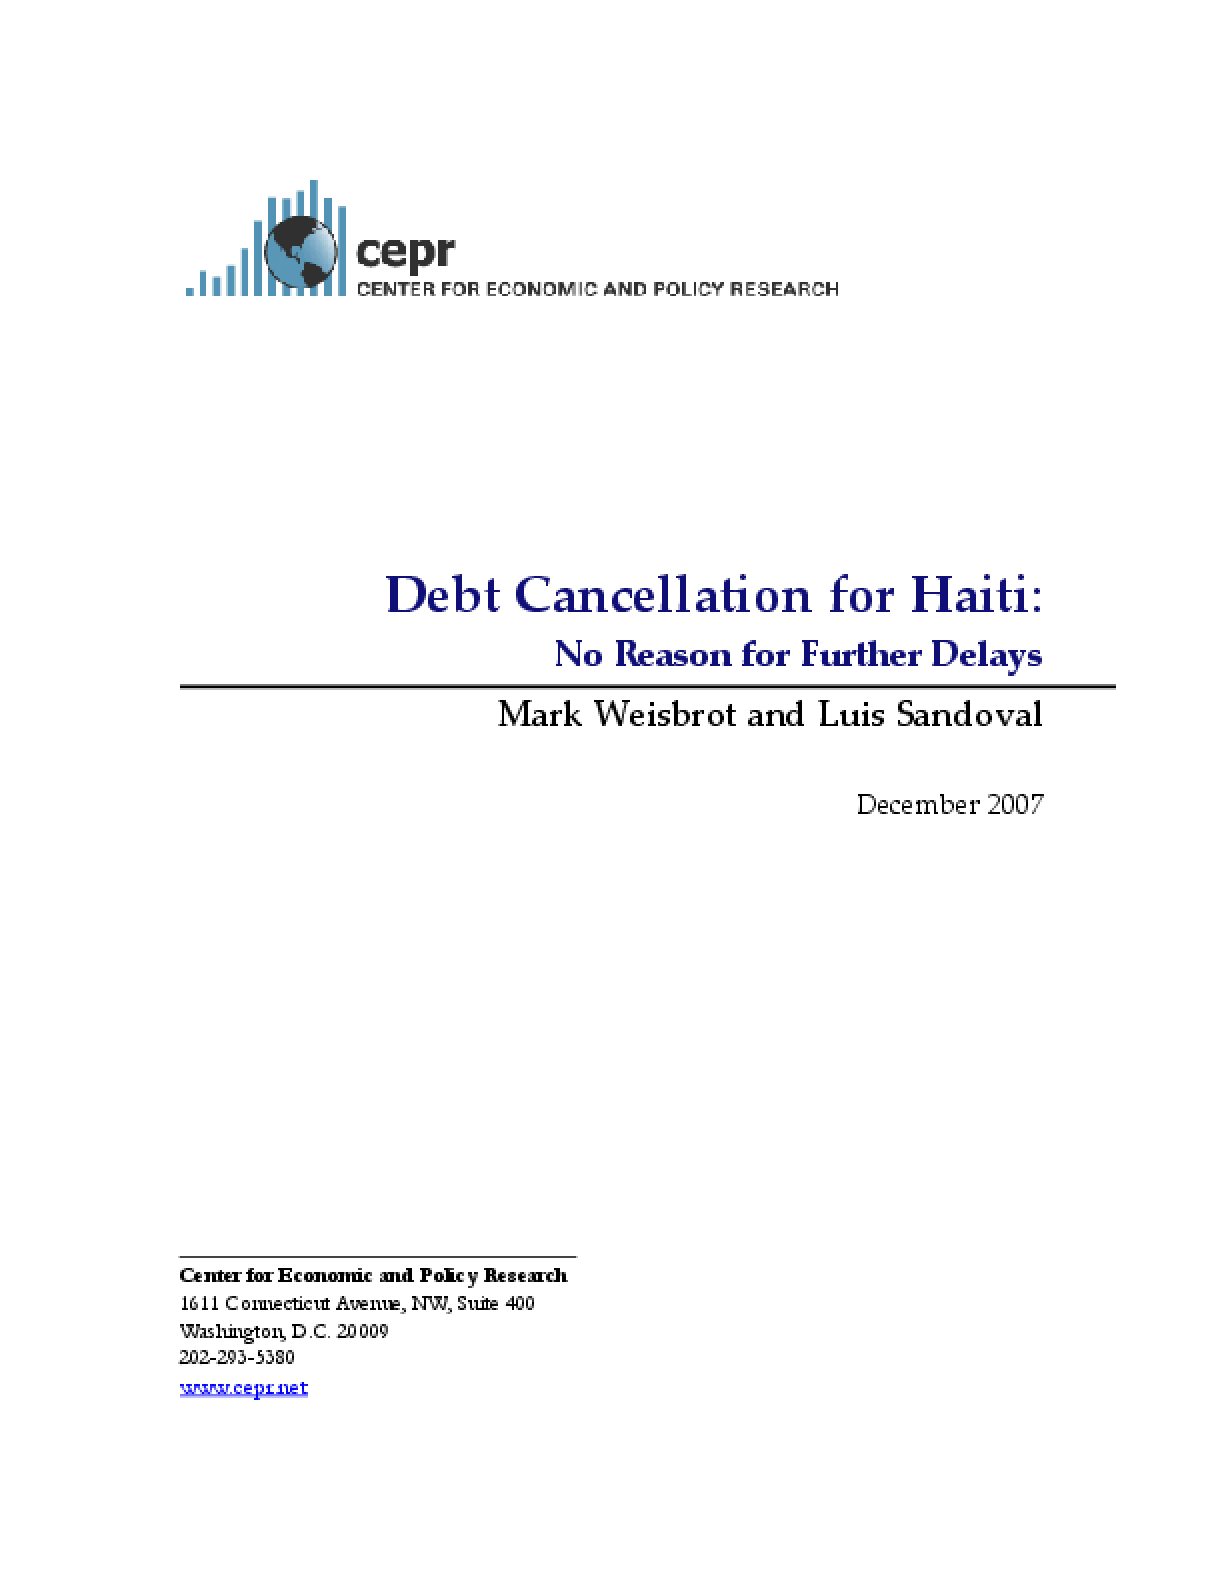 Debt Cancellation for Haiti: No Reason for Further Delays